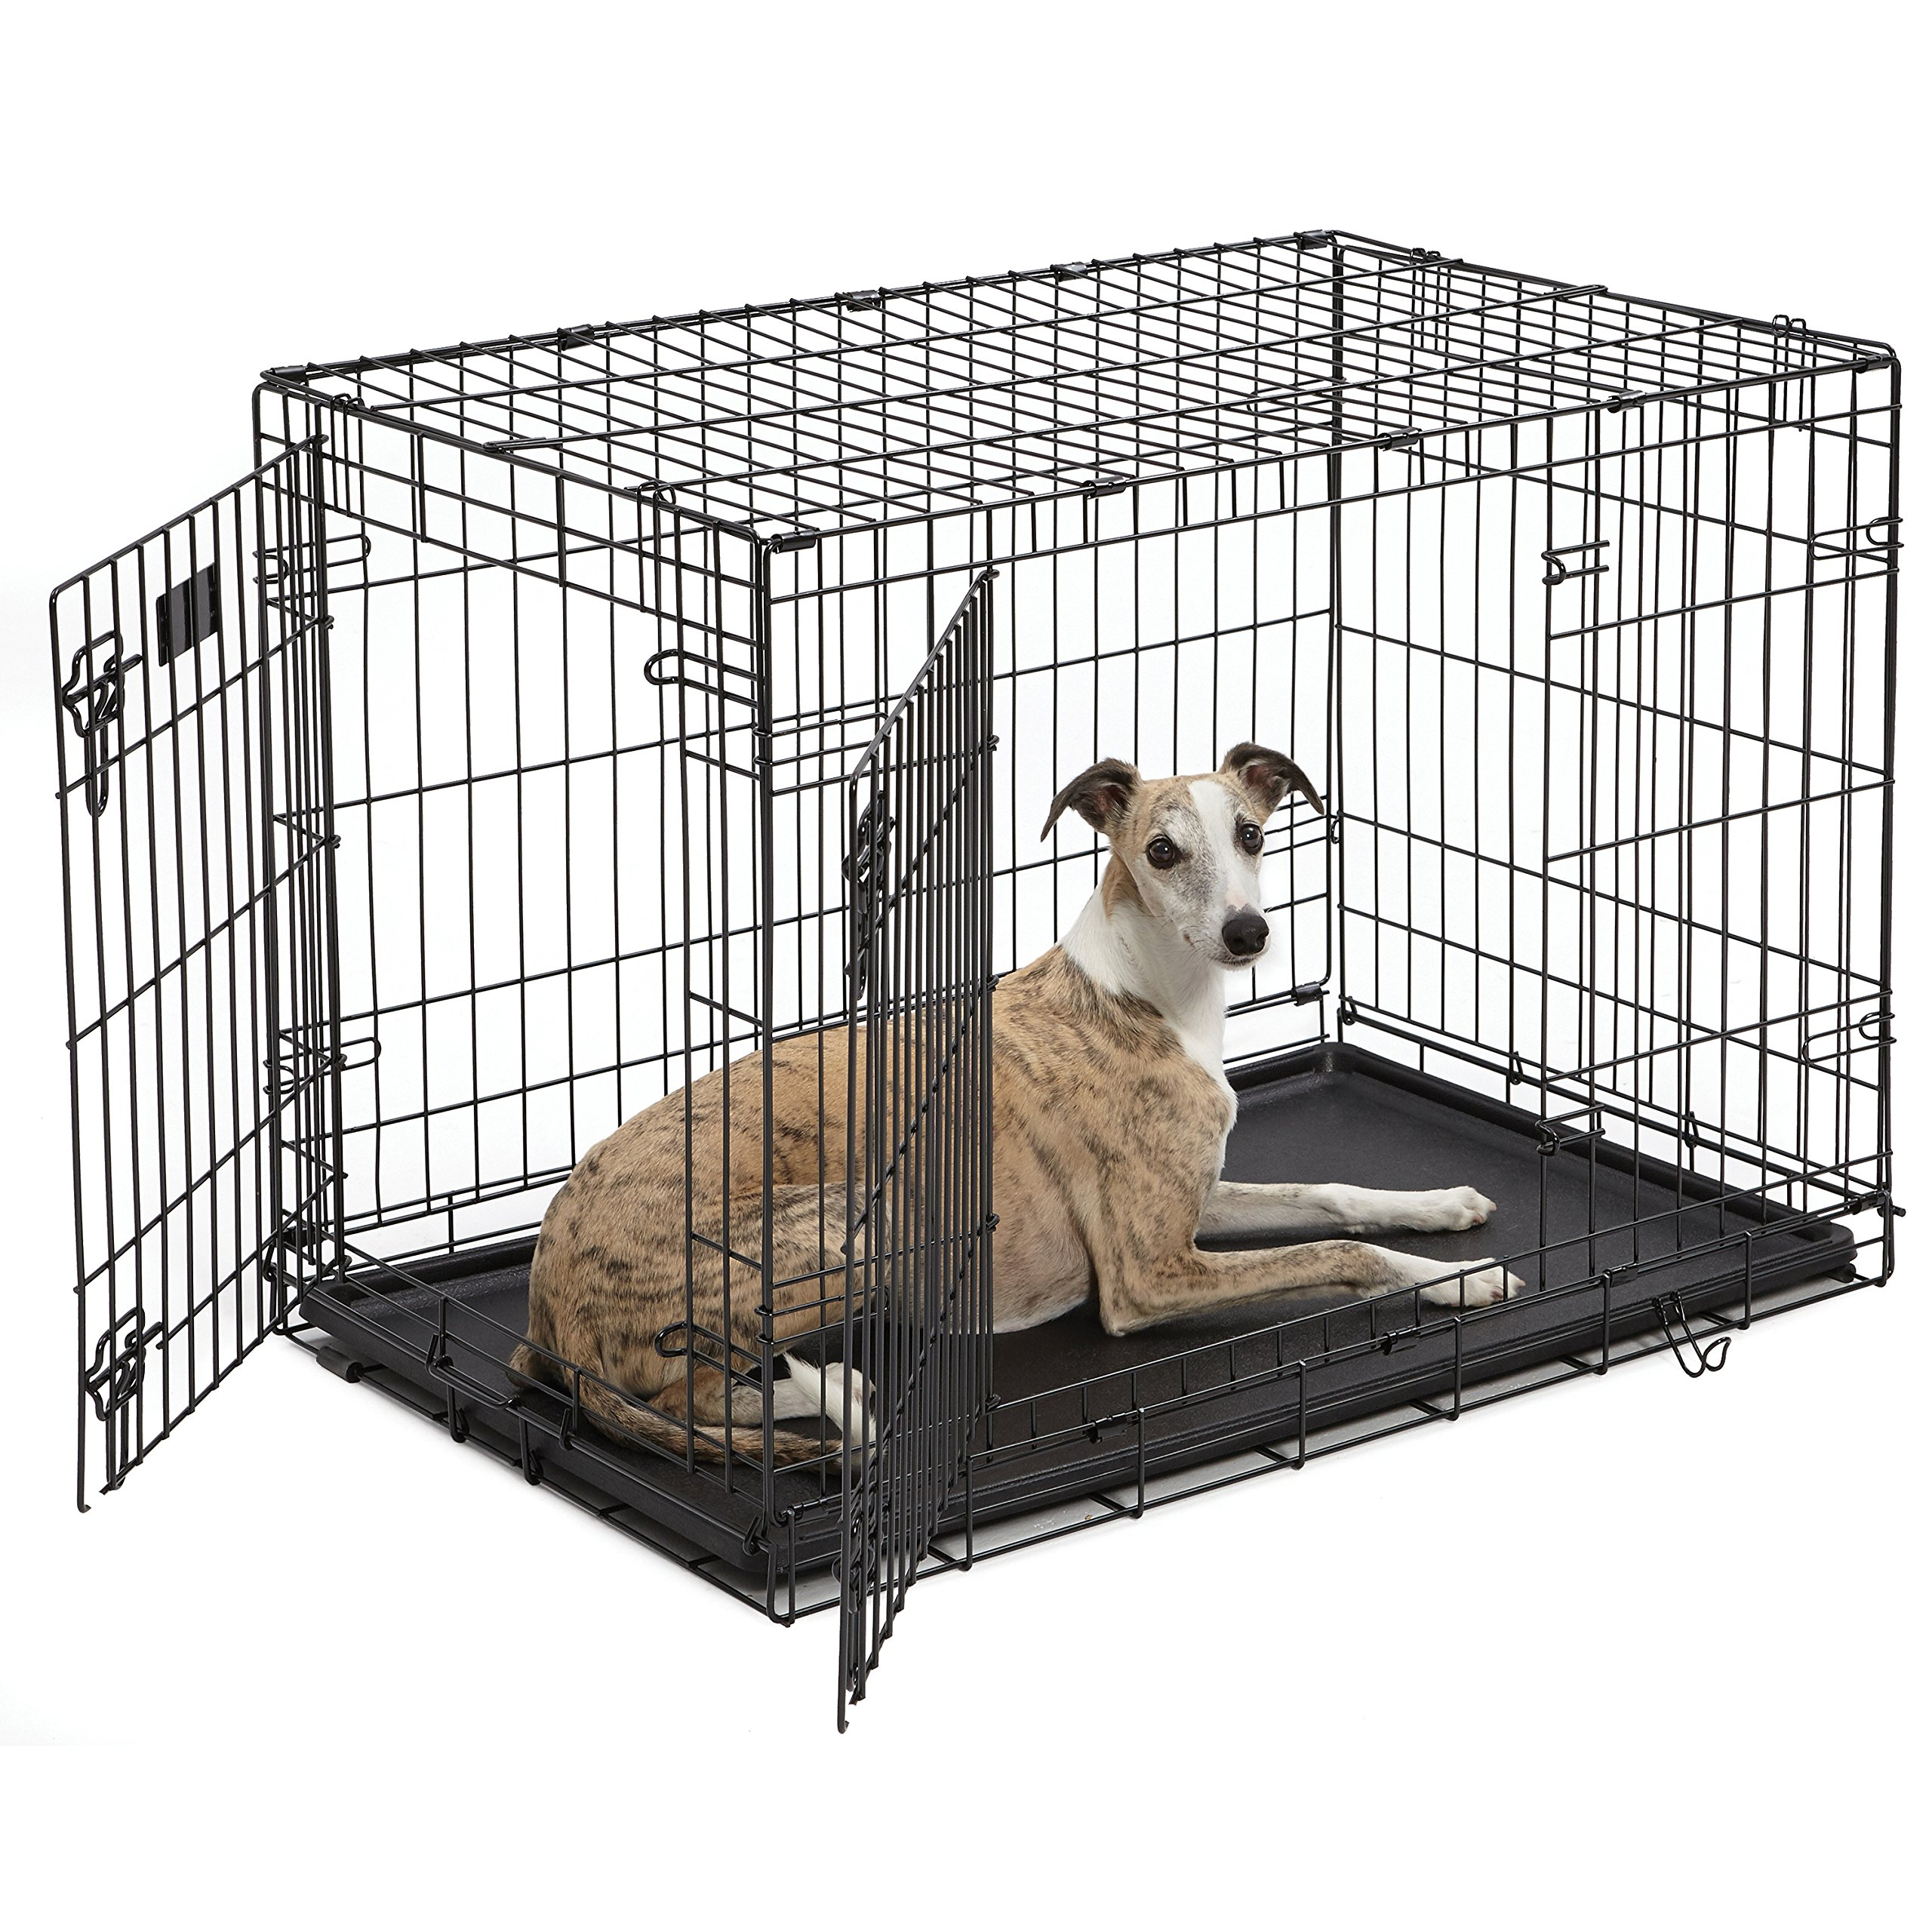 Dog Crate | MidWest iCrate 36 Inches Double Door Folding Metal Dog Crate w/ Divider Panel, Floor Protecting Feet & Leak Proof Dog Tray | Intermediate Dog Breed, Black by MidWest Homes for Pets